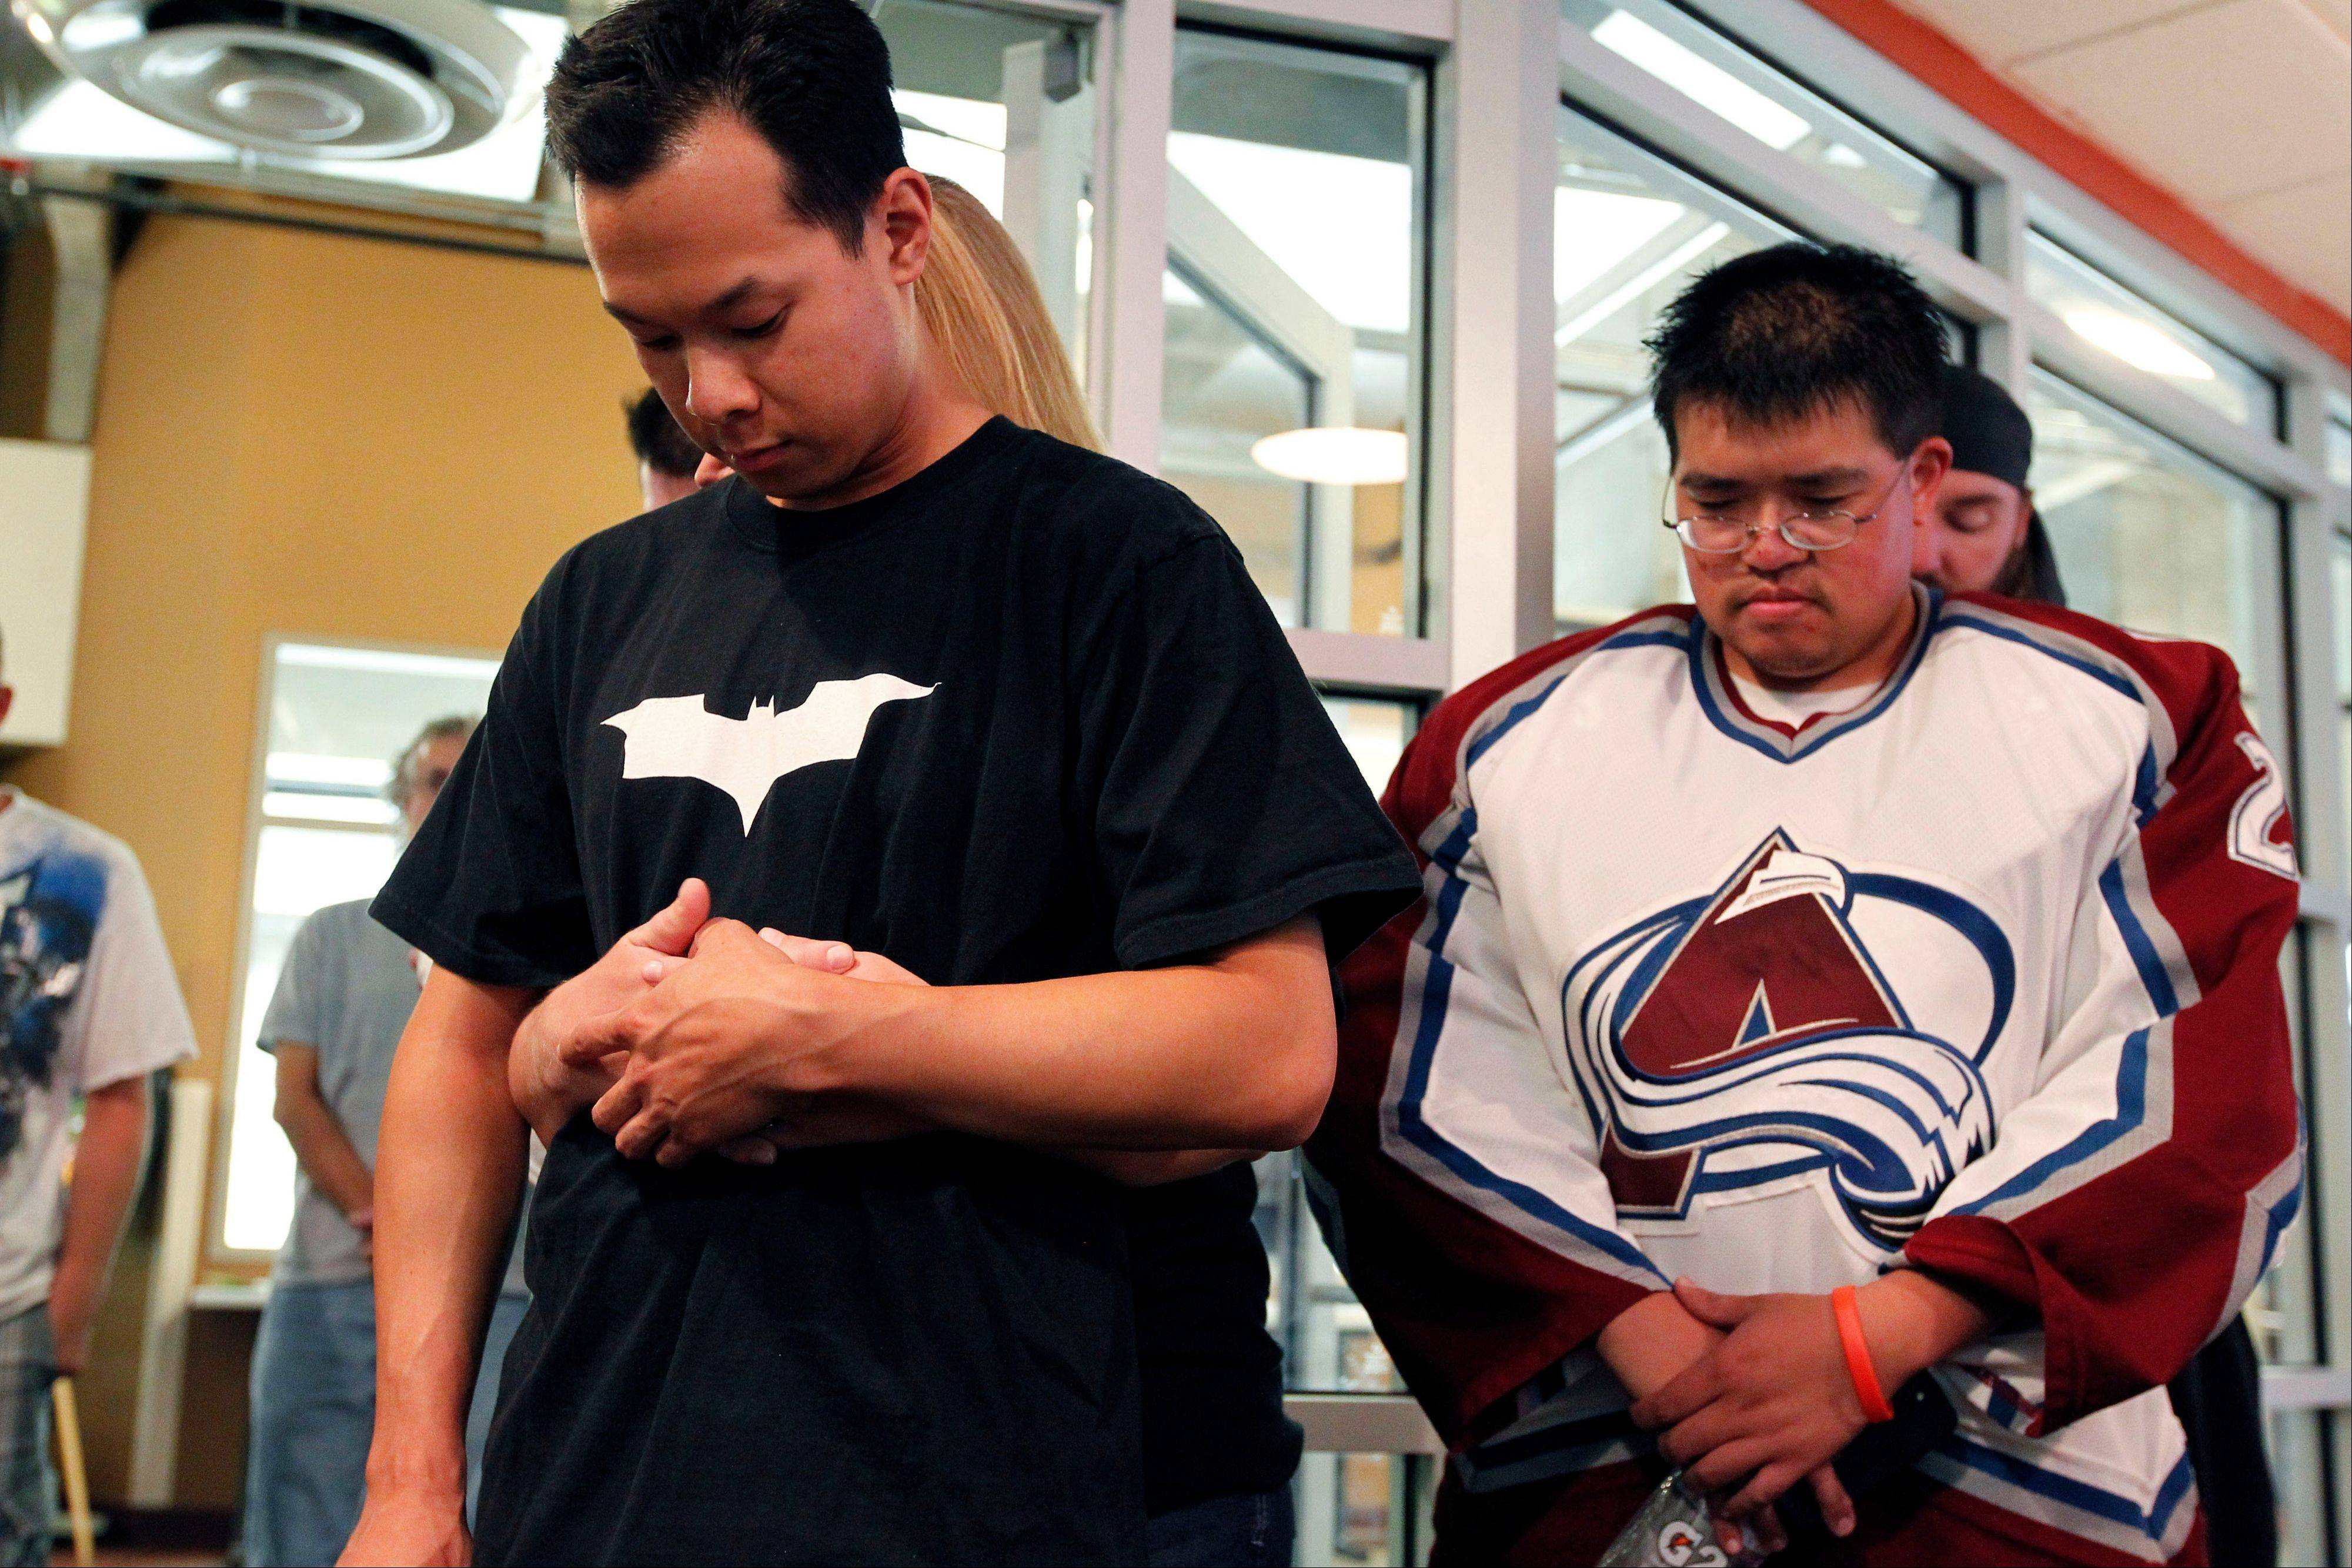 Joey Suyeishi, left, wears a bat T-shirt and is held by his wife Heidi Suyeishi, as they and others hold a moment of silence to honor Jessica Ghawi in the Penalty Box Bar during a fund raising event at the Edge Ice Arena, Saturday in Littleton, Colo. Ghawi was one of the 12 people killed in the July 20 shooting attack.